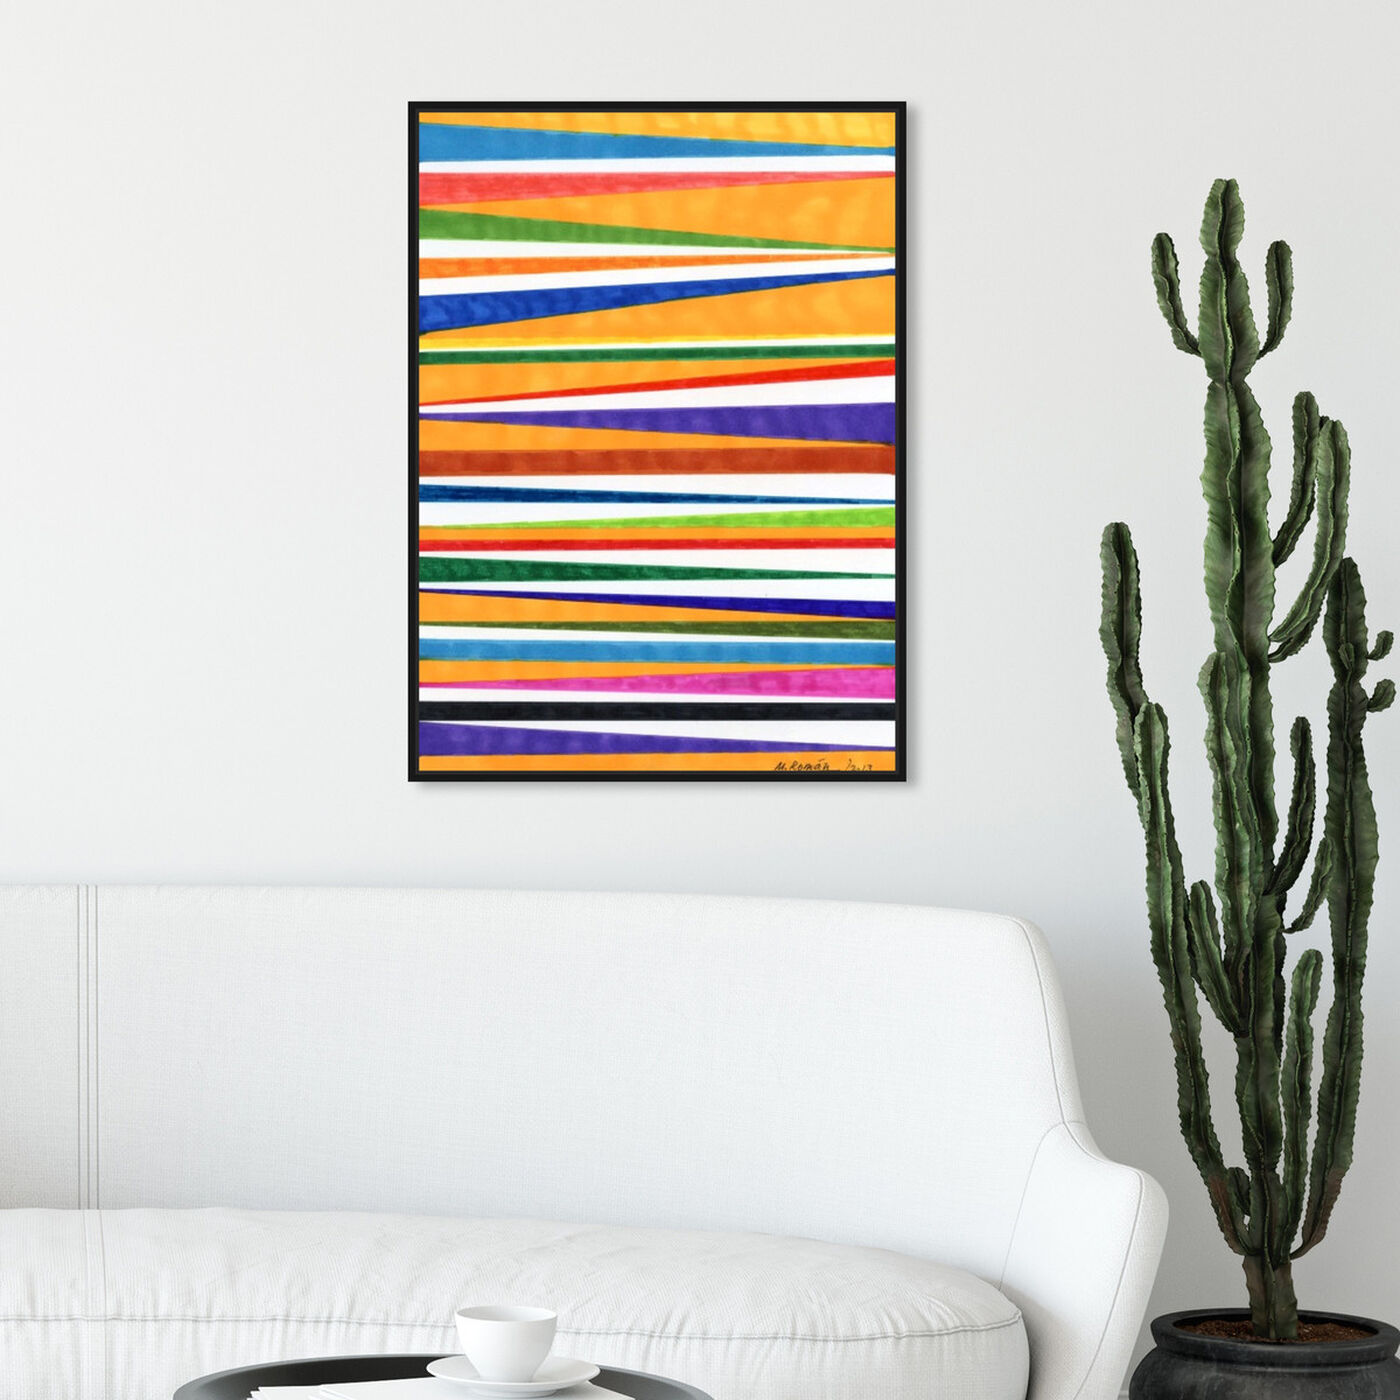 Hanging view of Canotiers in Color featuring abstract and geometric art.